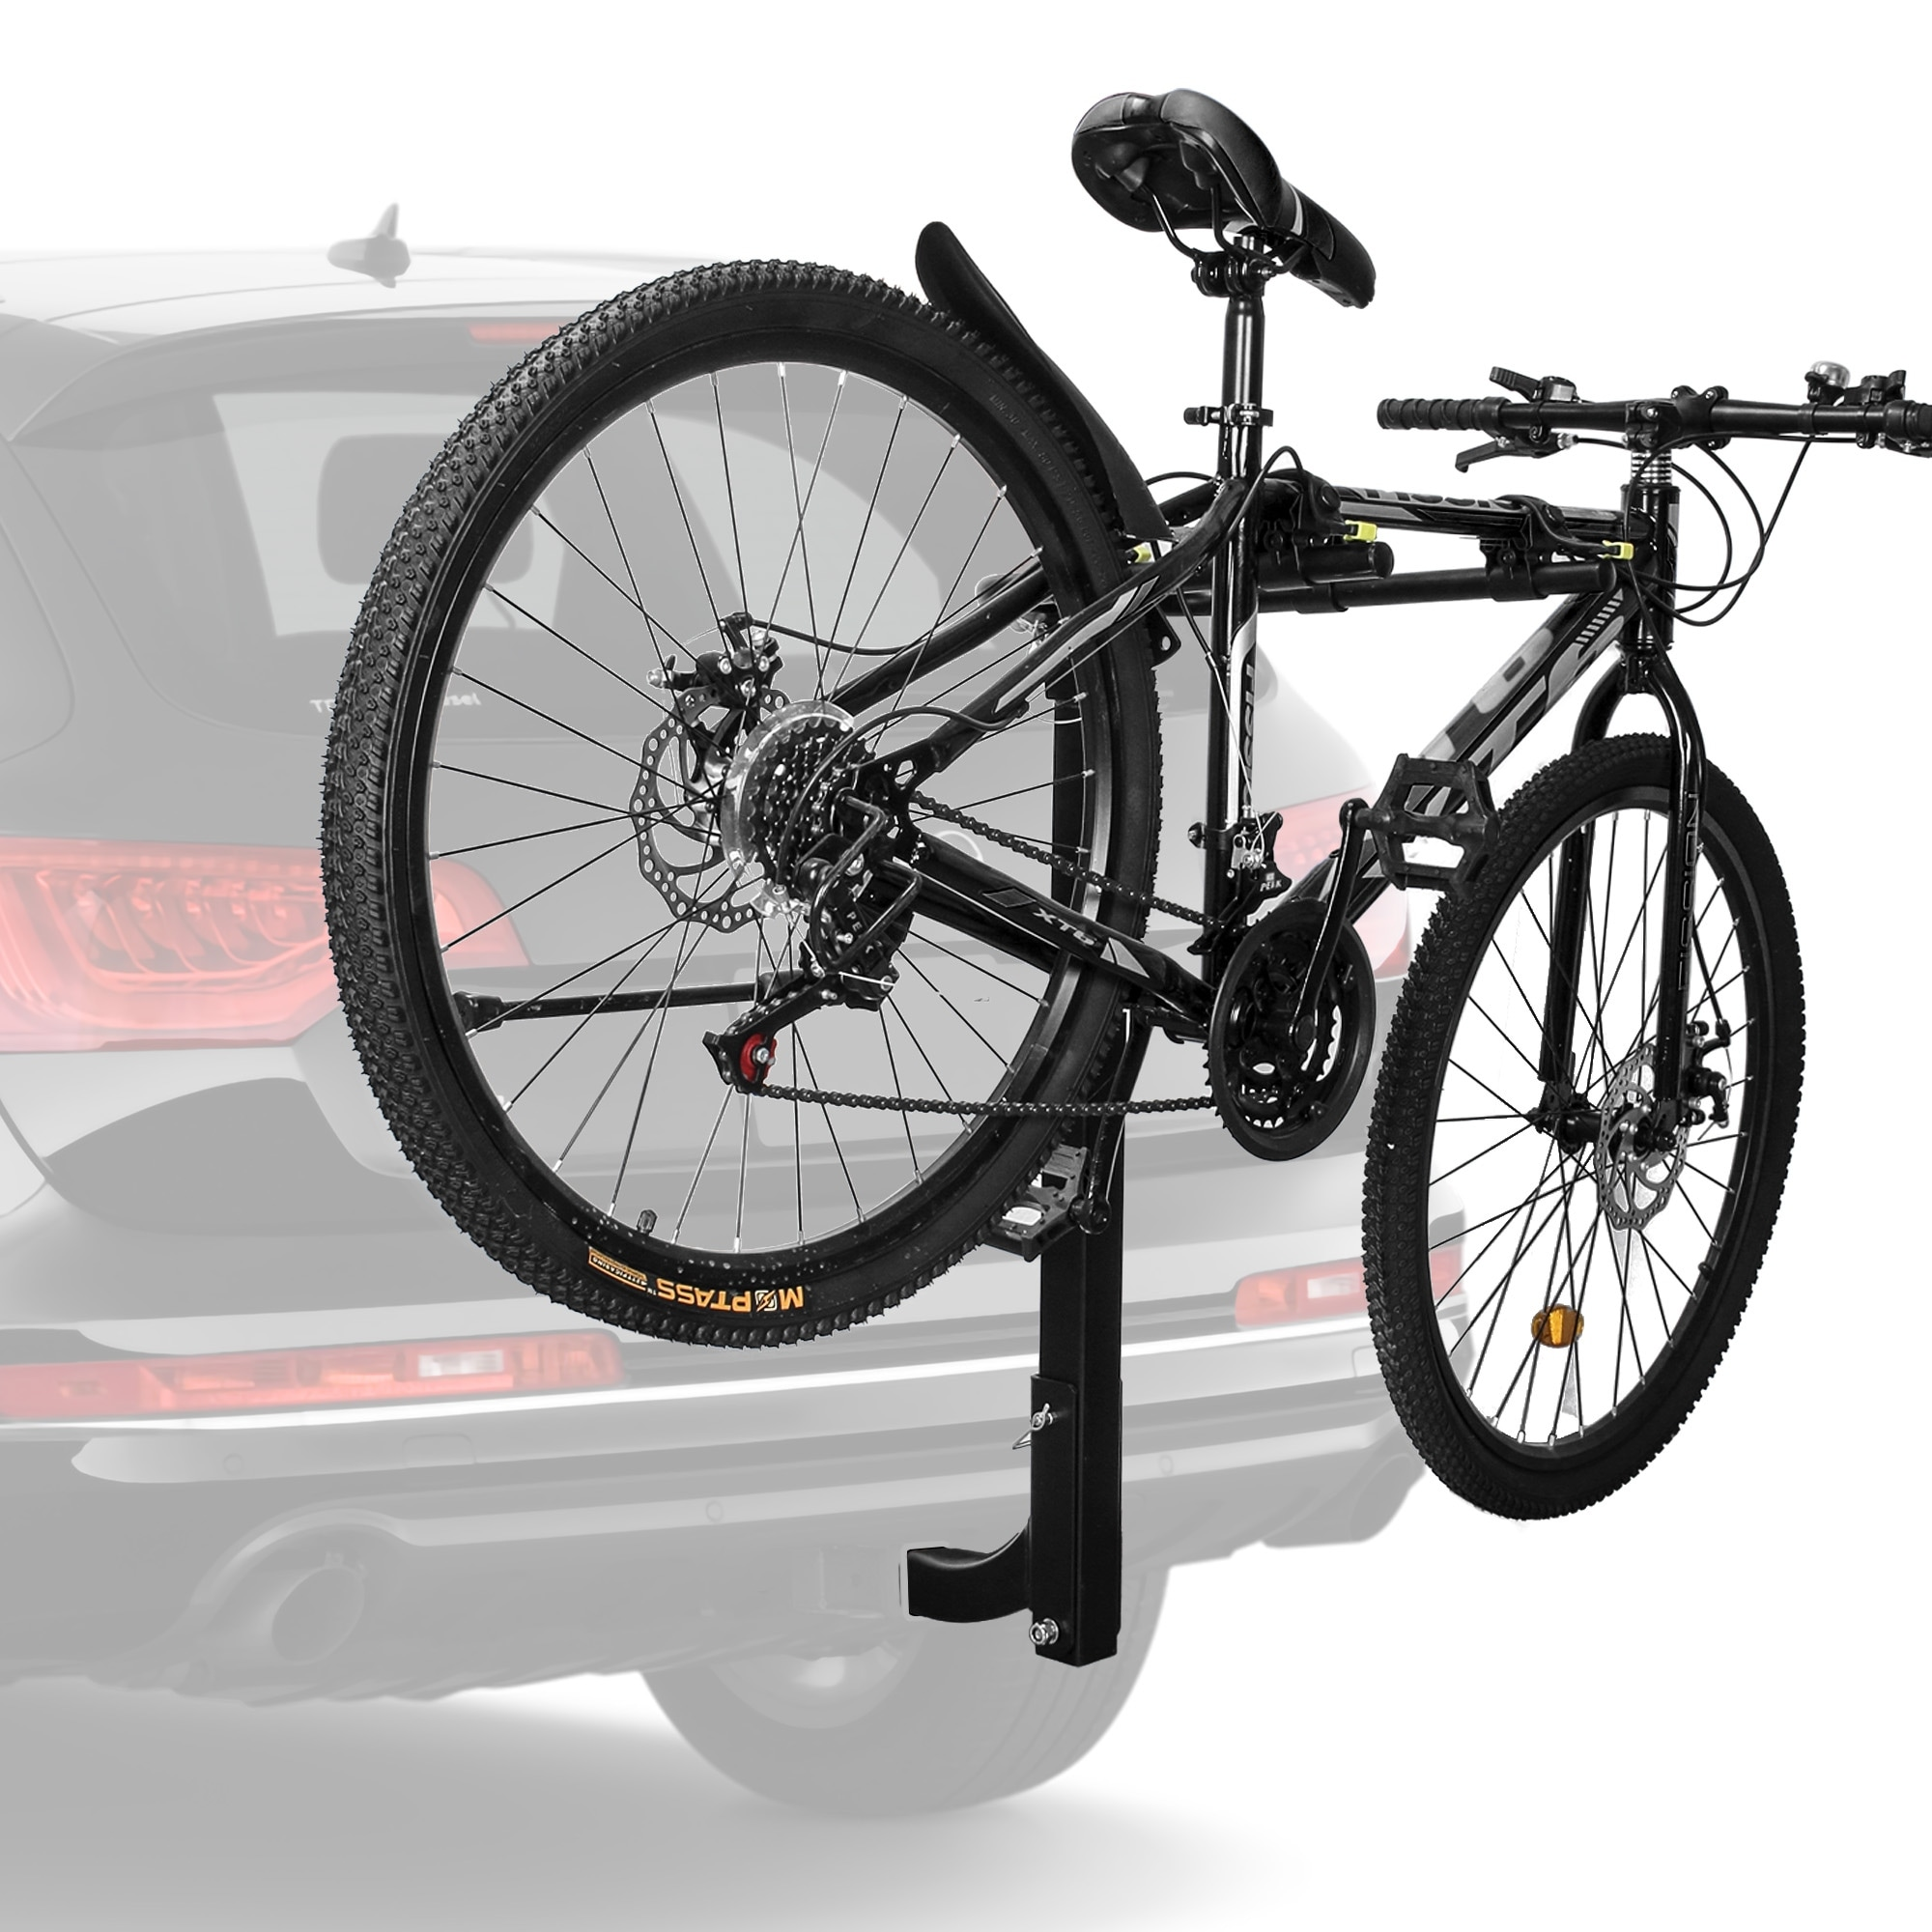 Bike Carrier Rack >> Avenn Premium 2 Bike Carrier Rack Hitch Mount Swing Down Bicycle Rack With 2 Inch Receiver